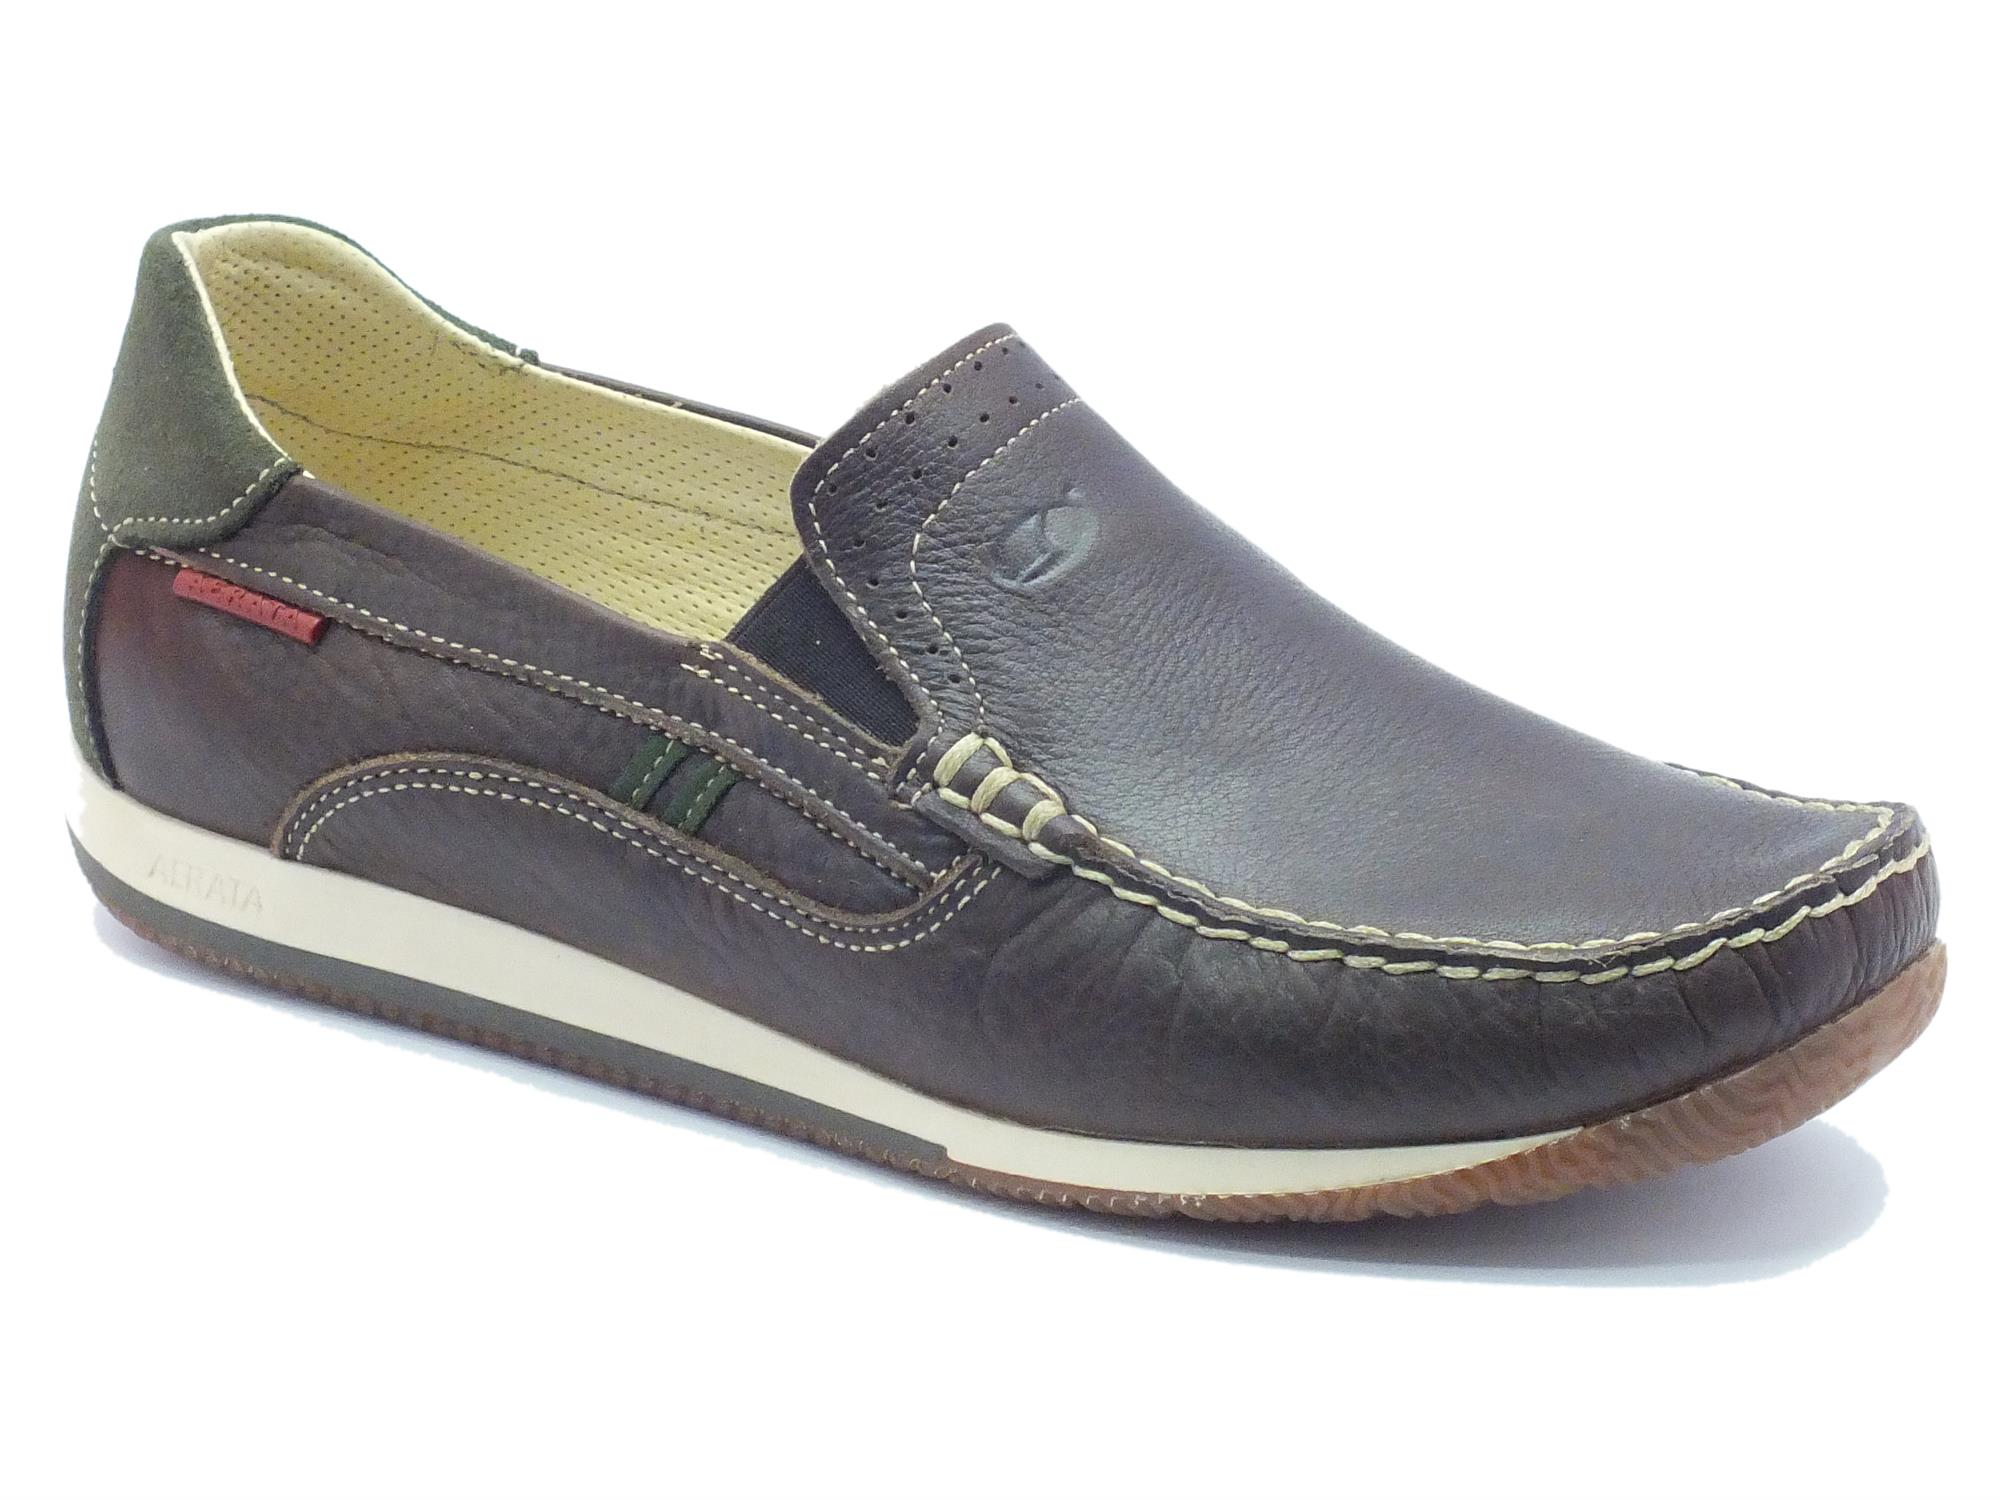 Moro Light Pelle Di Calzature Testa Grisport Vitiello Step Mocassini dCWxerBo